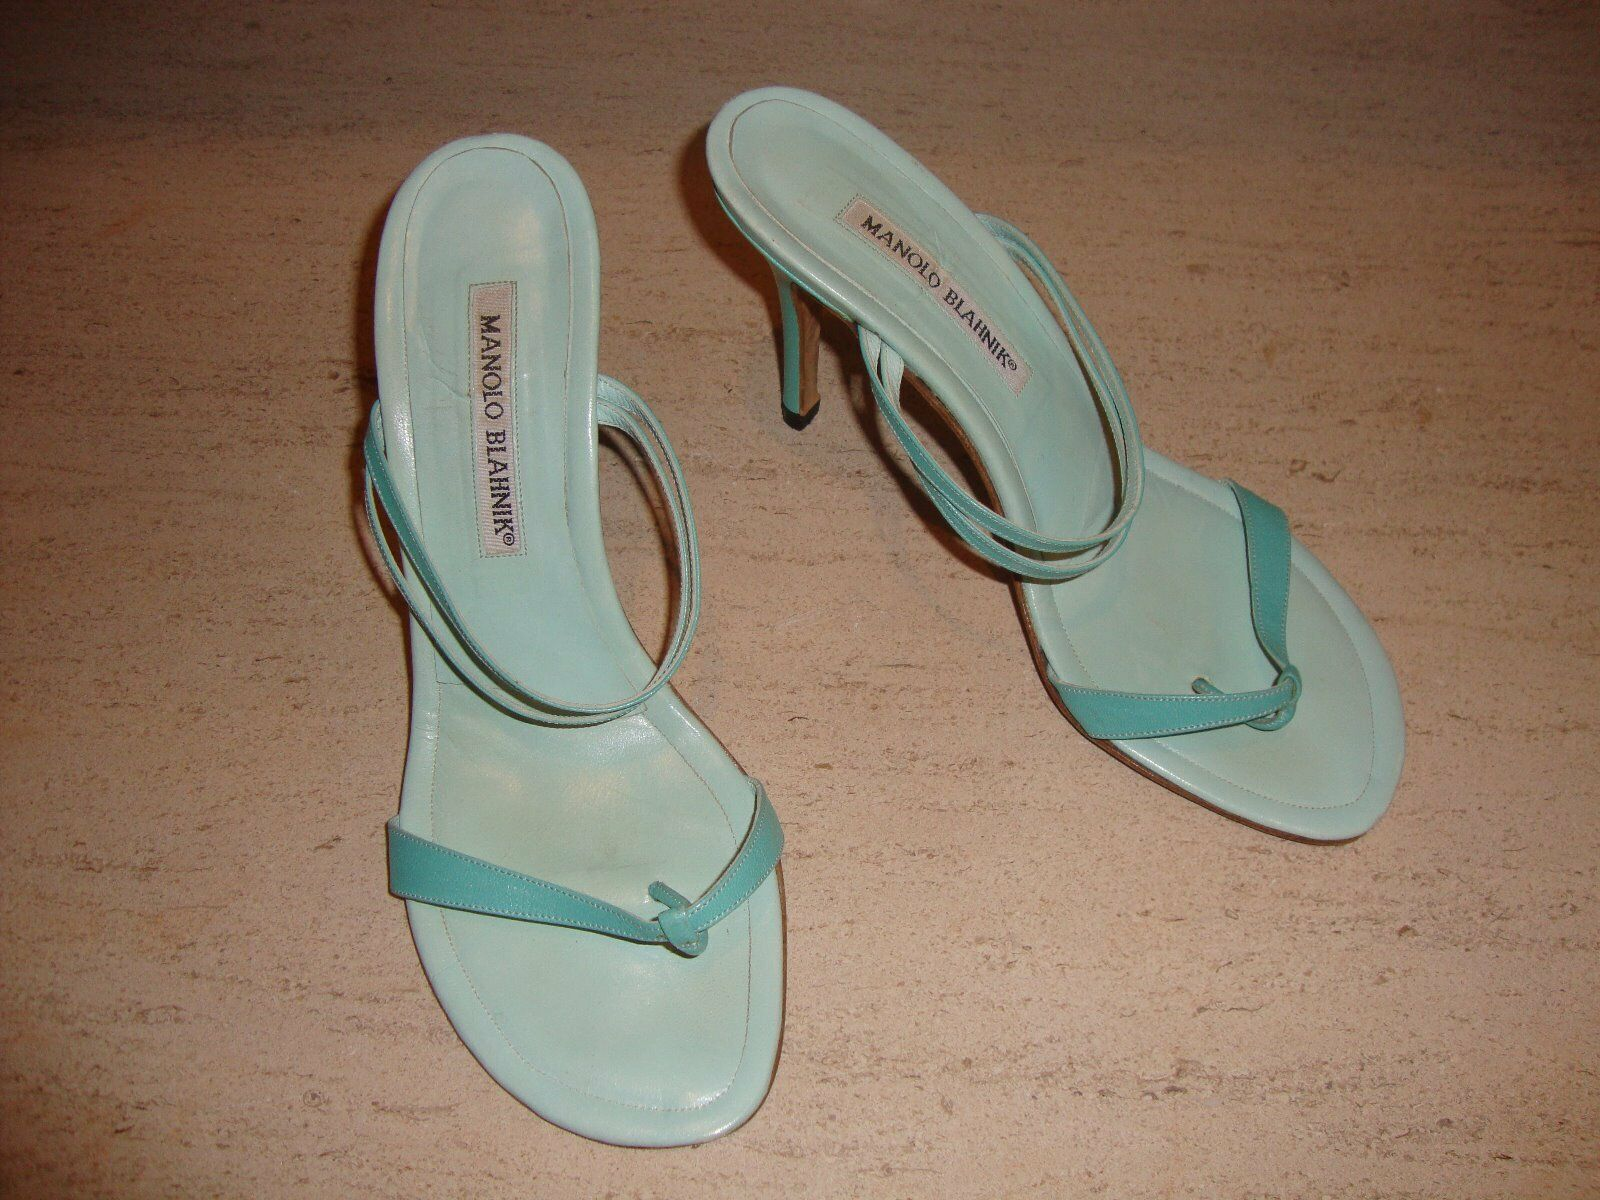 PERFECT STYLISH blueE LEATHER SANDALS BY MANOLO BLAHNIK FOR SUMMER